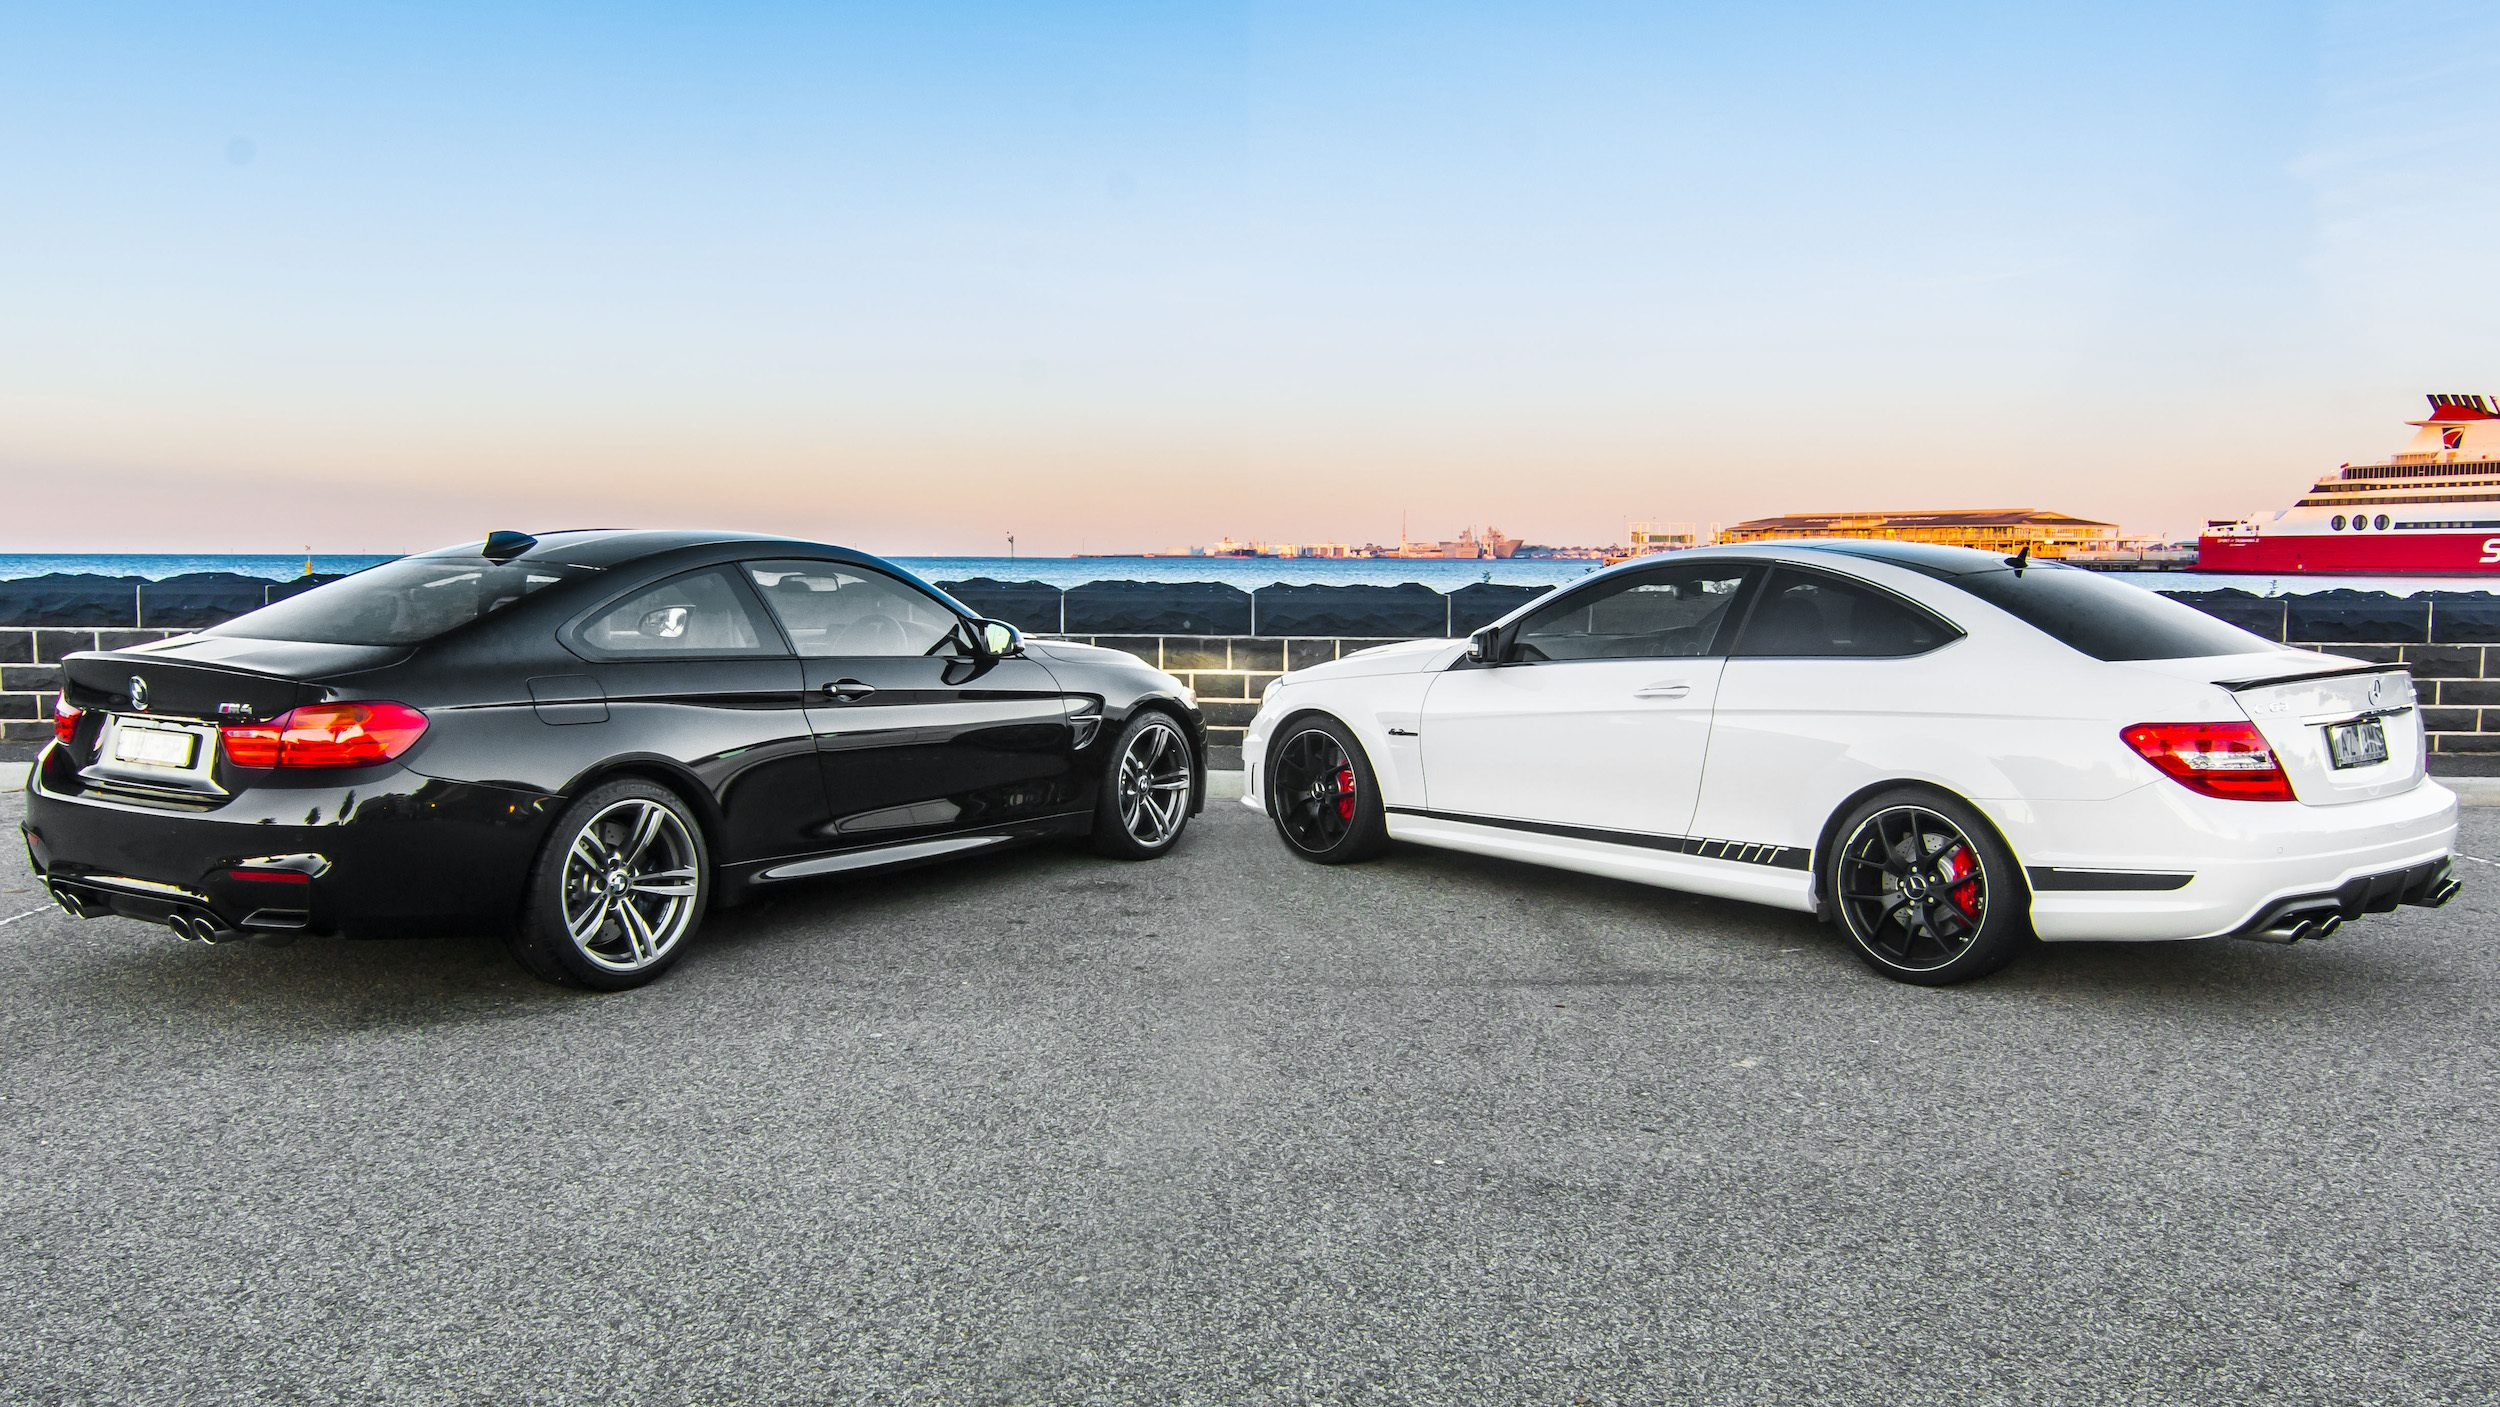 Bmw M4 Vs Mercedes C63 Amg Edition 507 Comparison Review Page 2